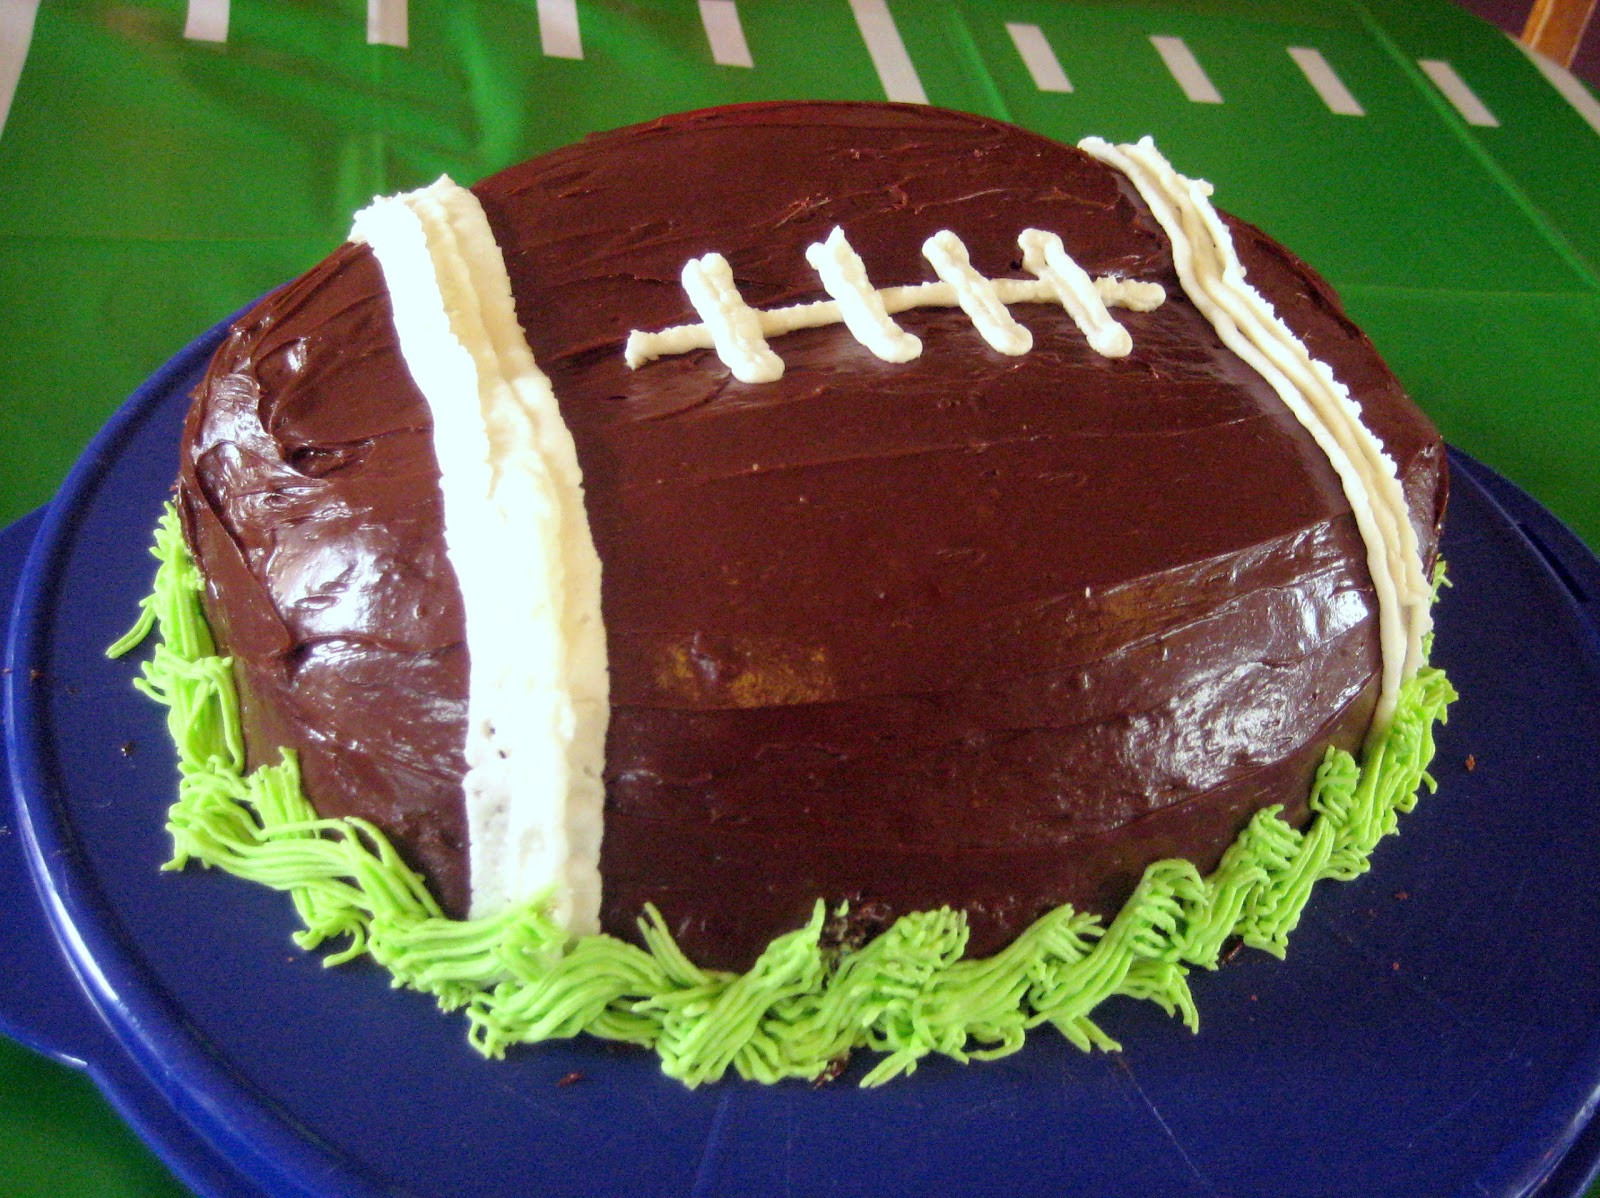 Best ideas about Football Birthday Cake . Save or Pin COBO Football Cakes Now.